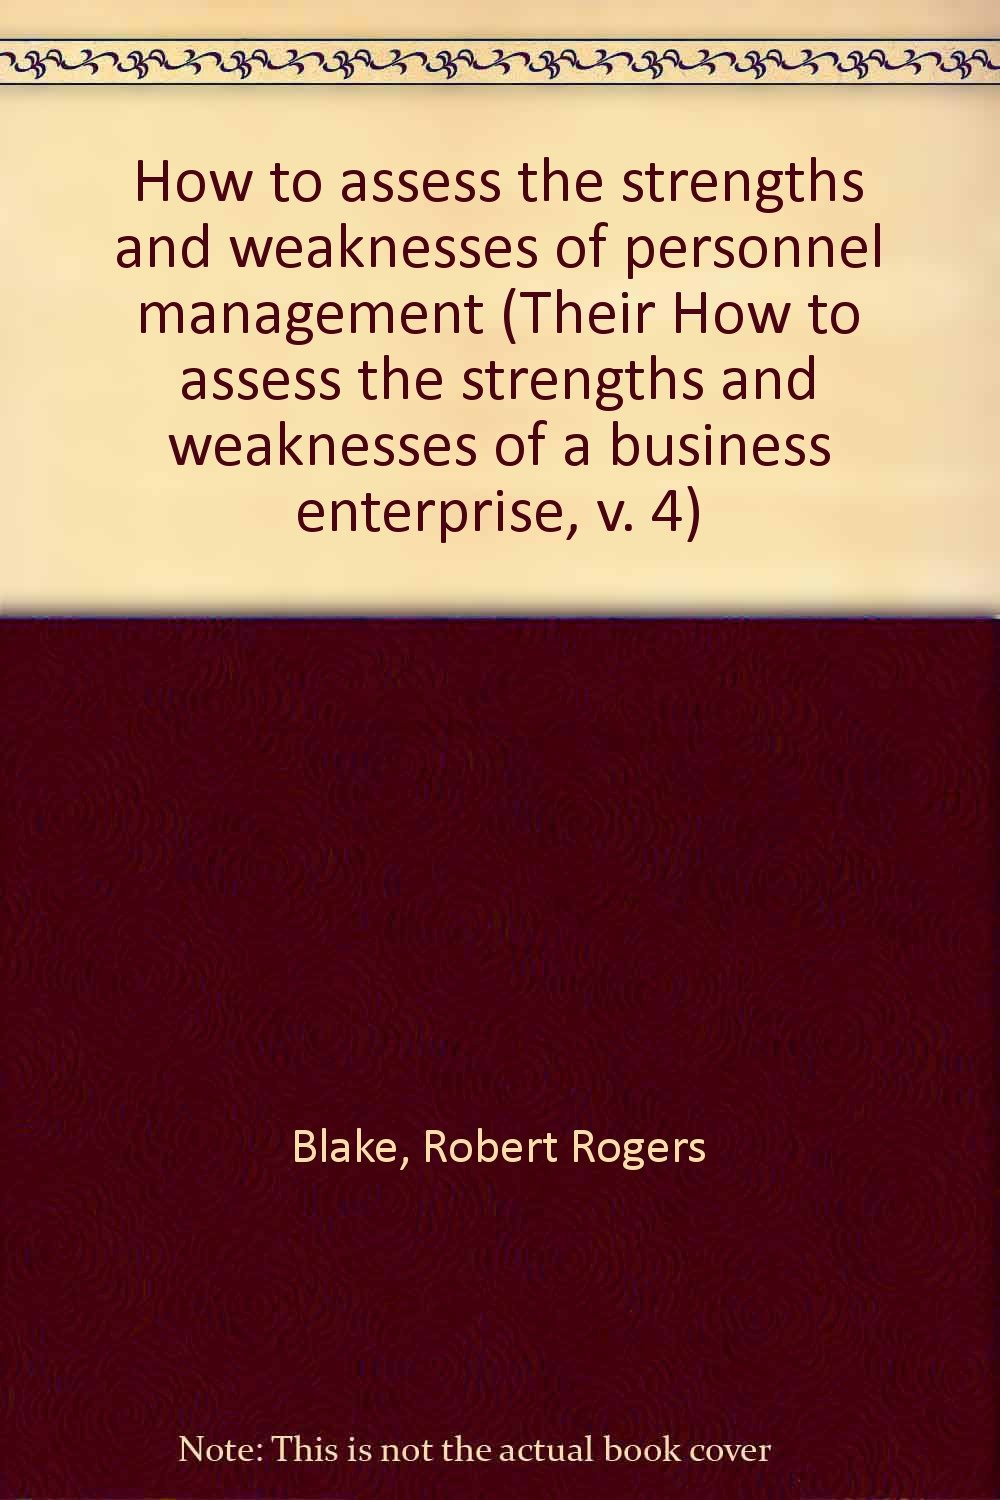 how to assess the strengths and weaknesses of personnel management how to assess the strengths and weaknesses of personnel management their how to assess the strengths and weaknesses of a business enterprise v